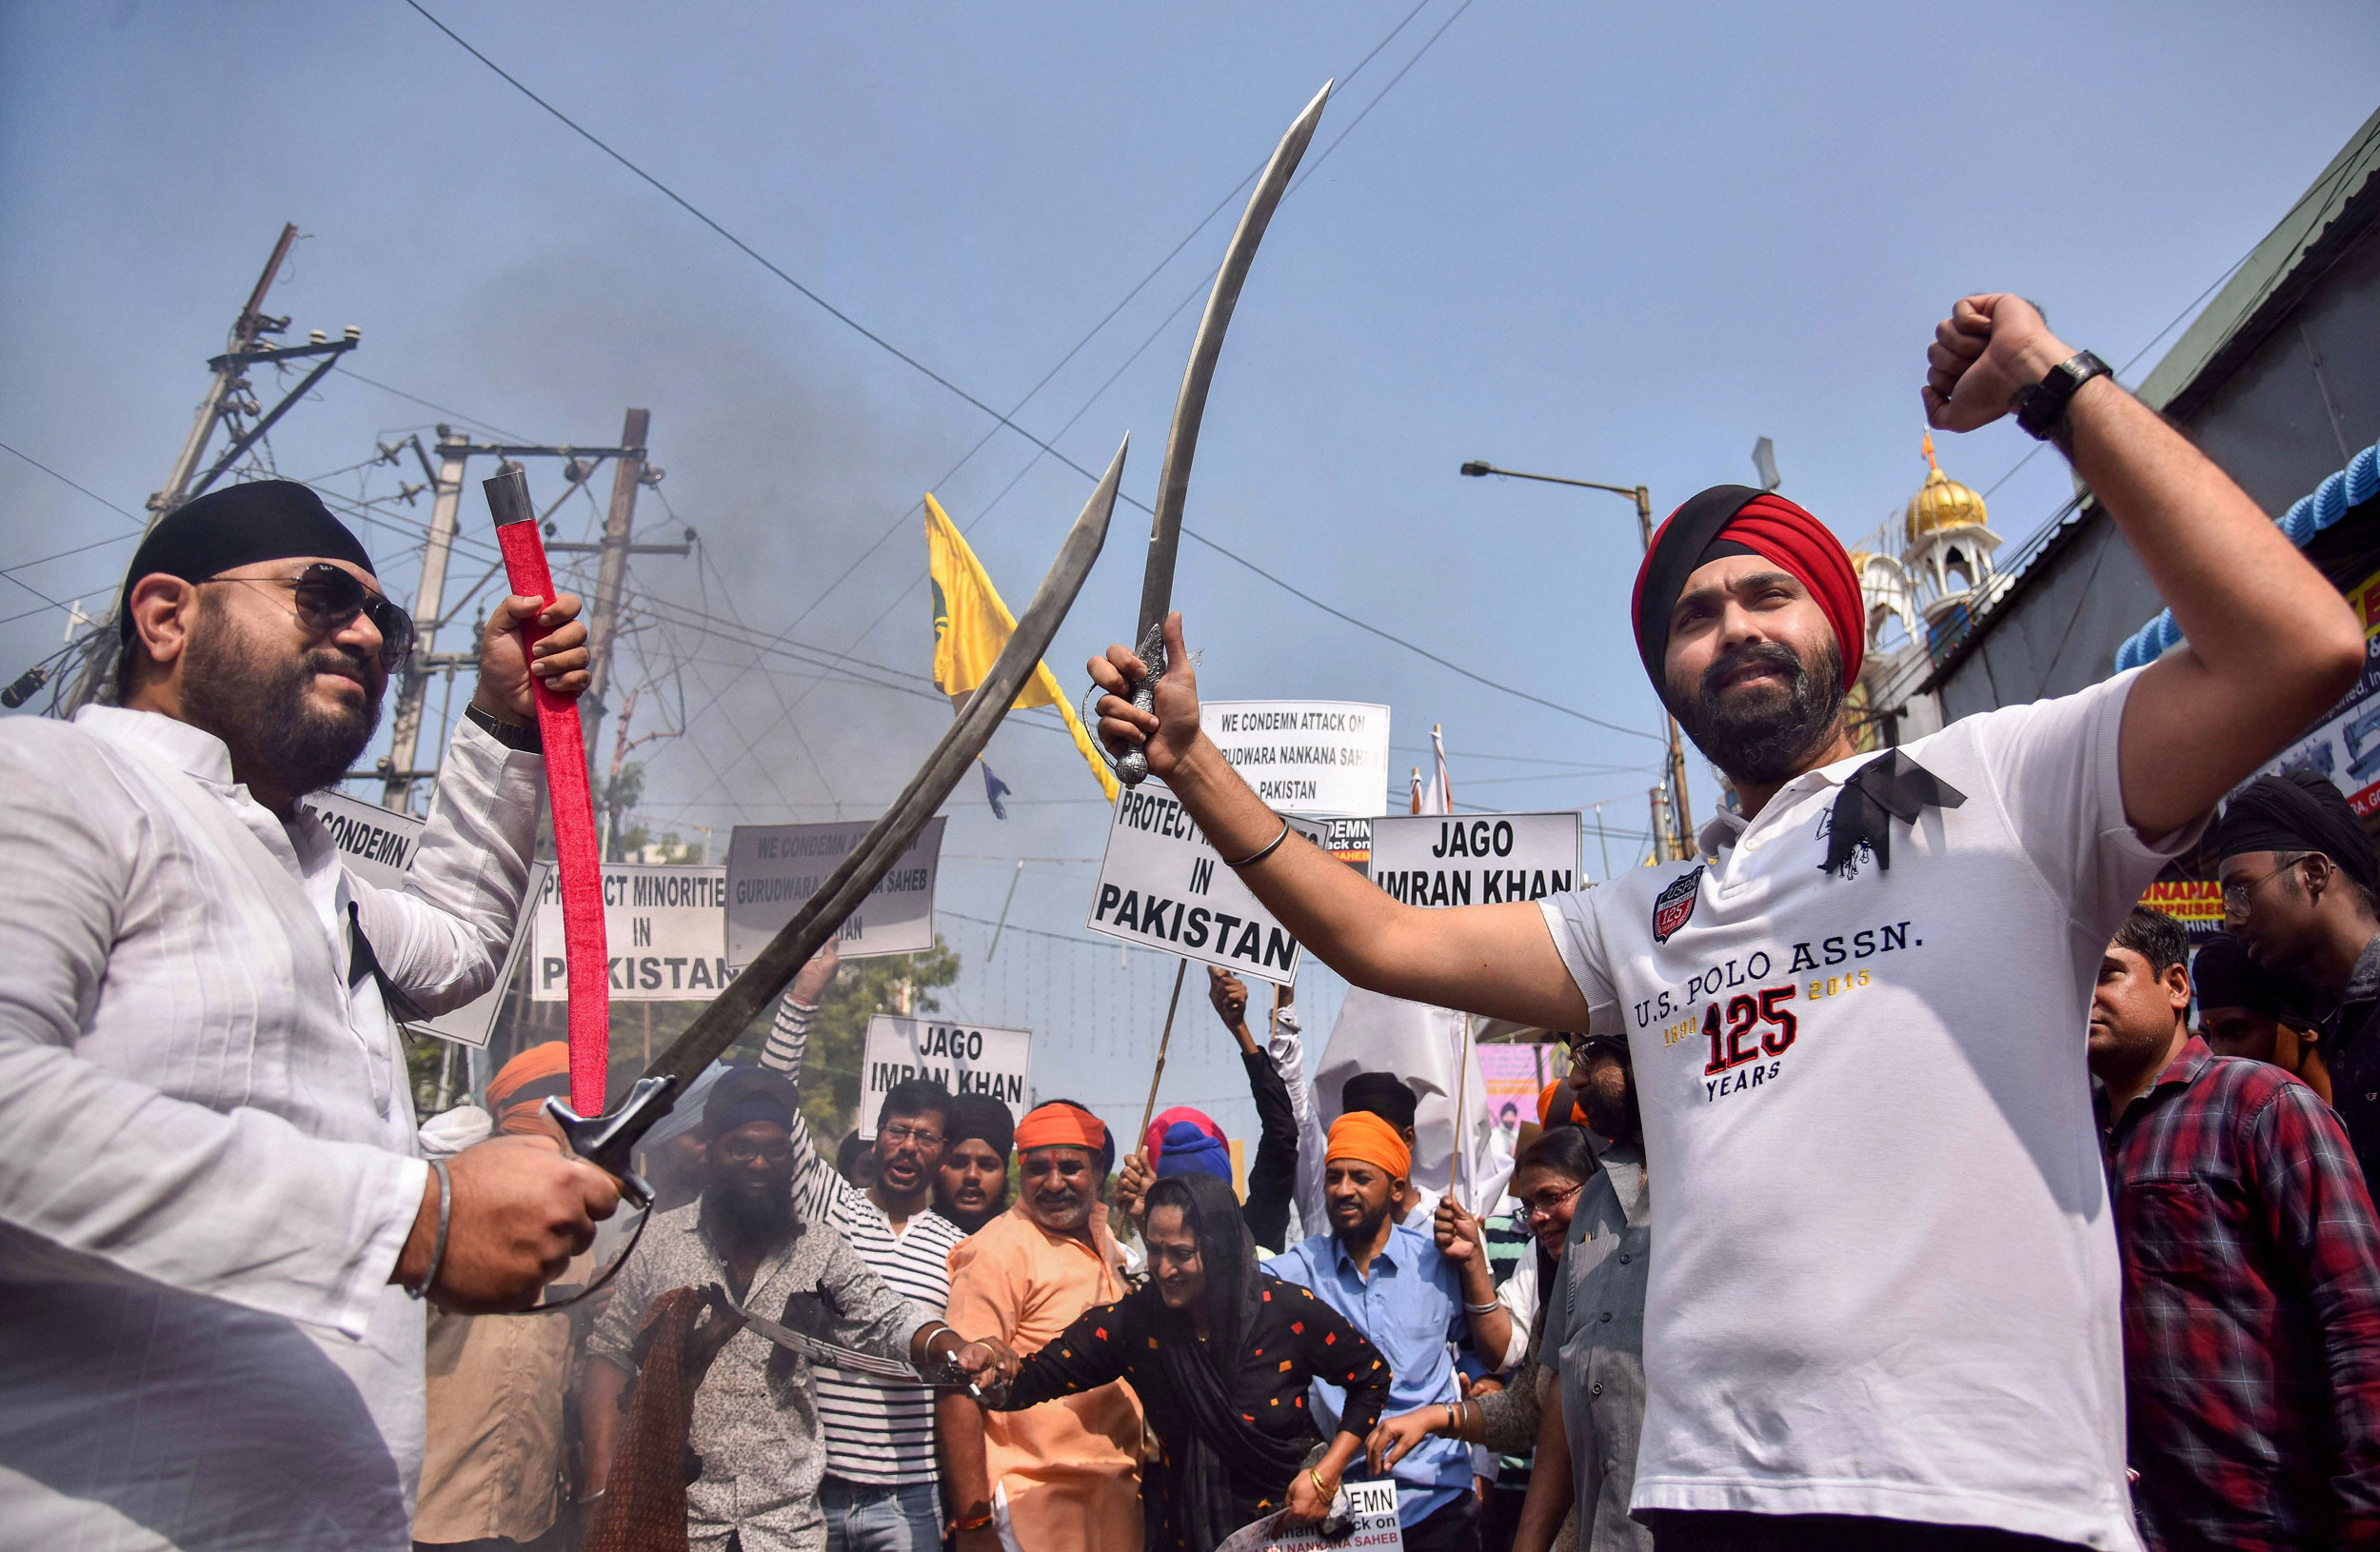 People from the Sikh community protest the attack on Gurudwara Nankana Sahib in Pakistan, at Central Gurudwara in Hyderabad, on Sunday.